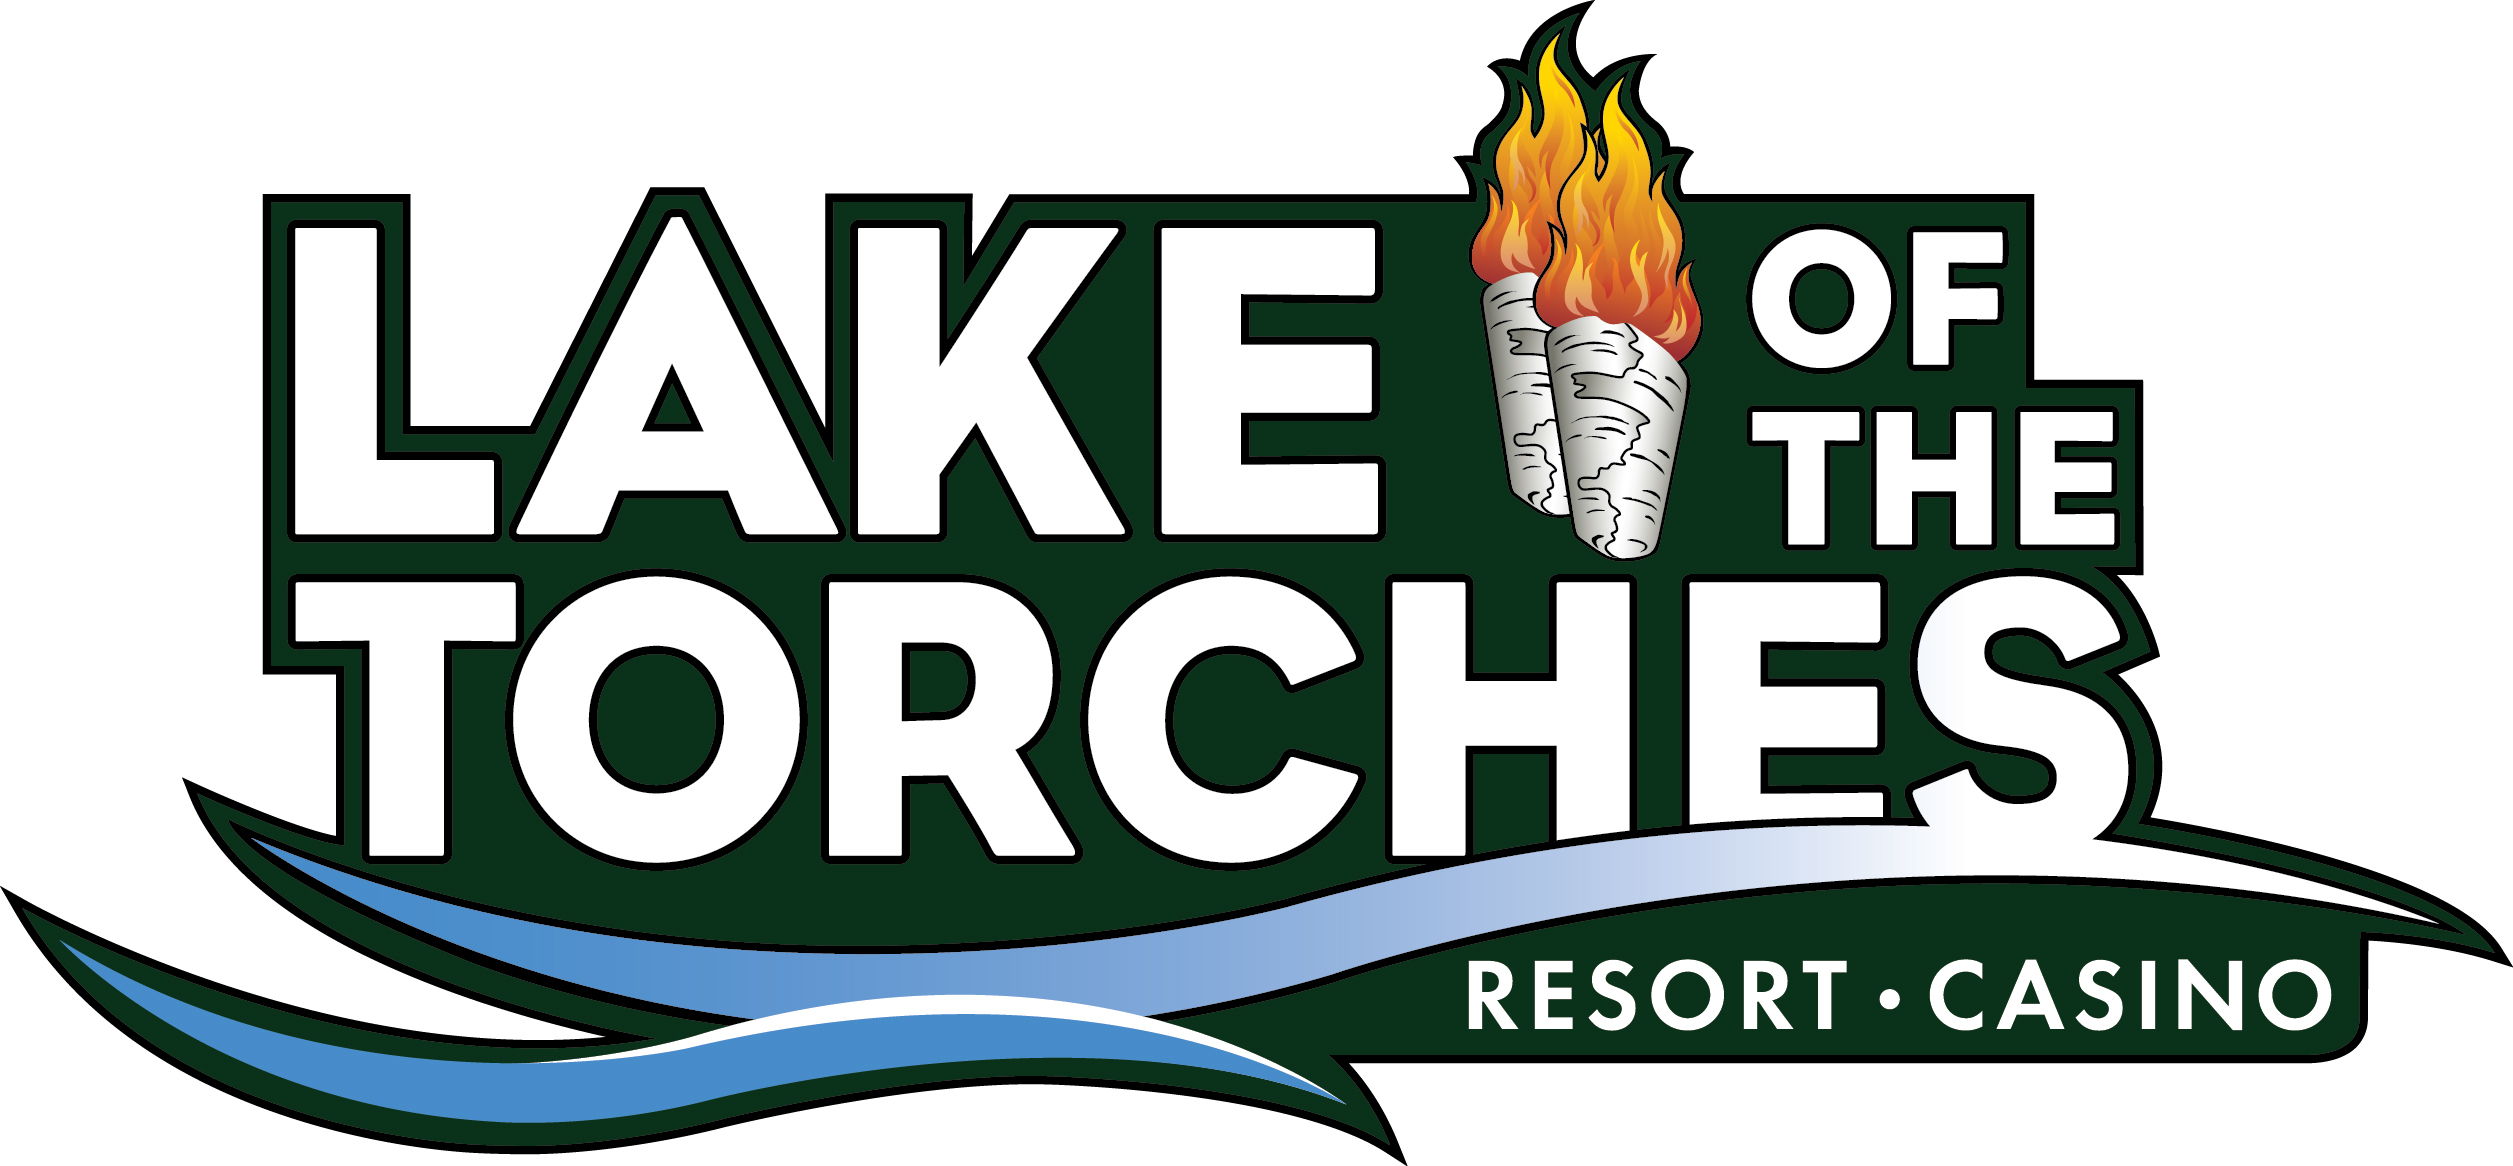 Lake of the Torches Resort Logo